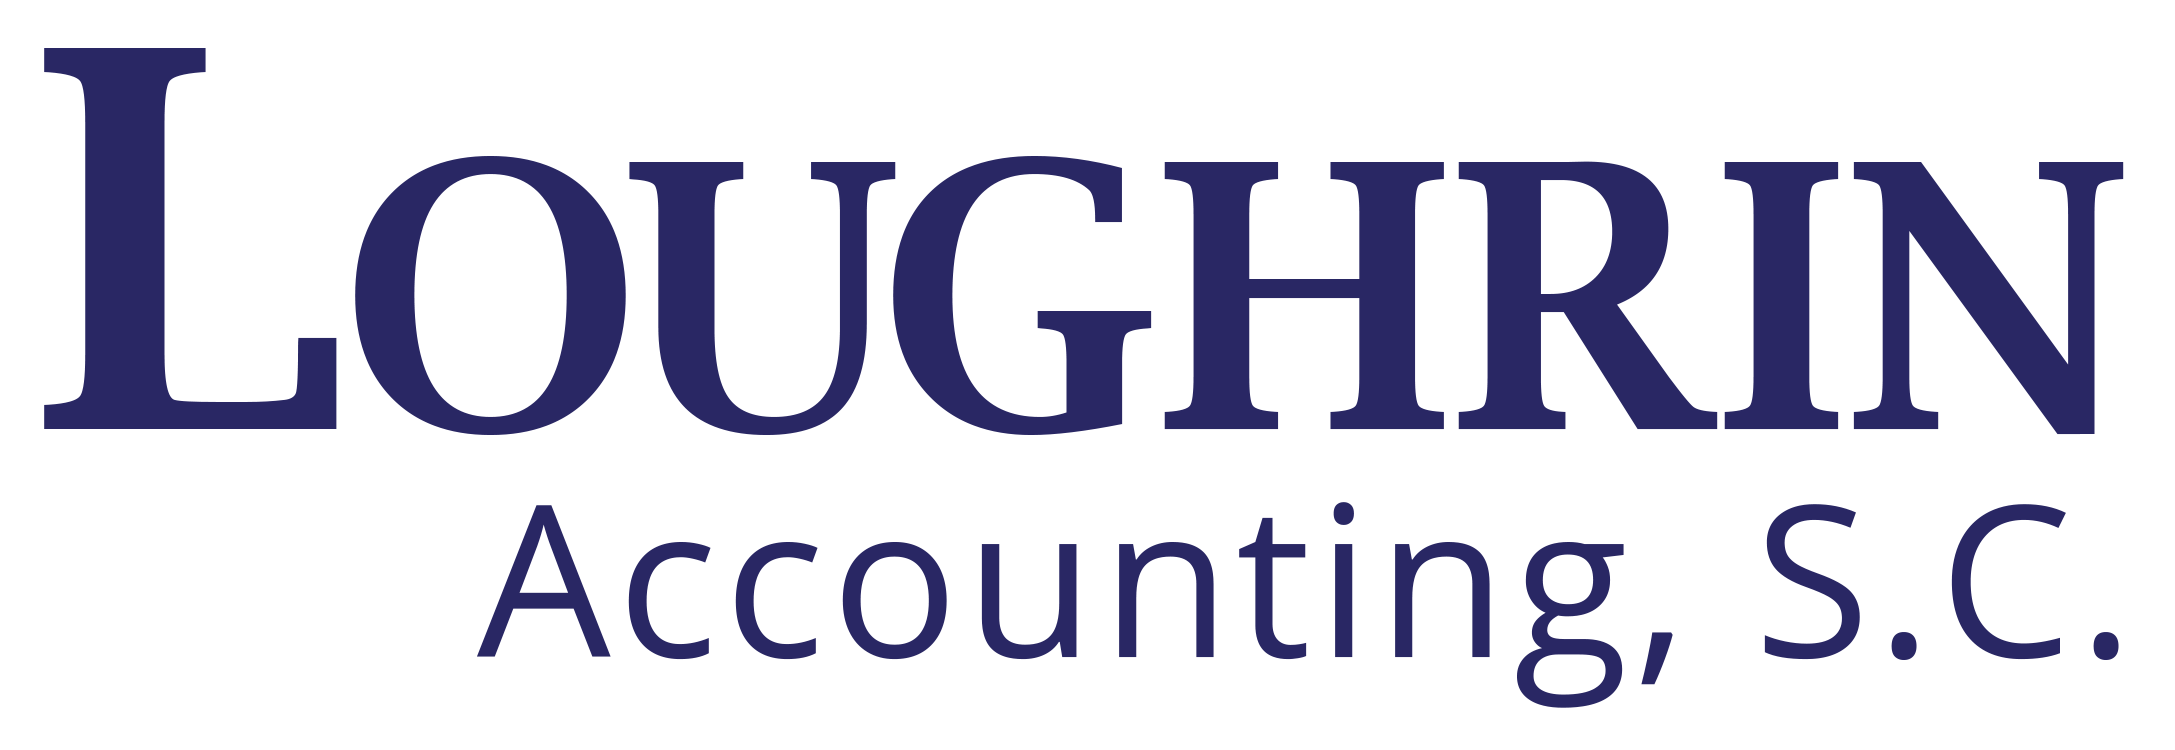 Loughrin Accounting, S.C. | Site Map Page